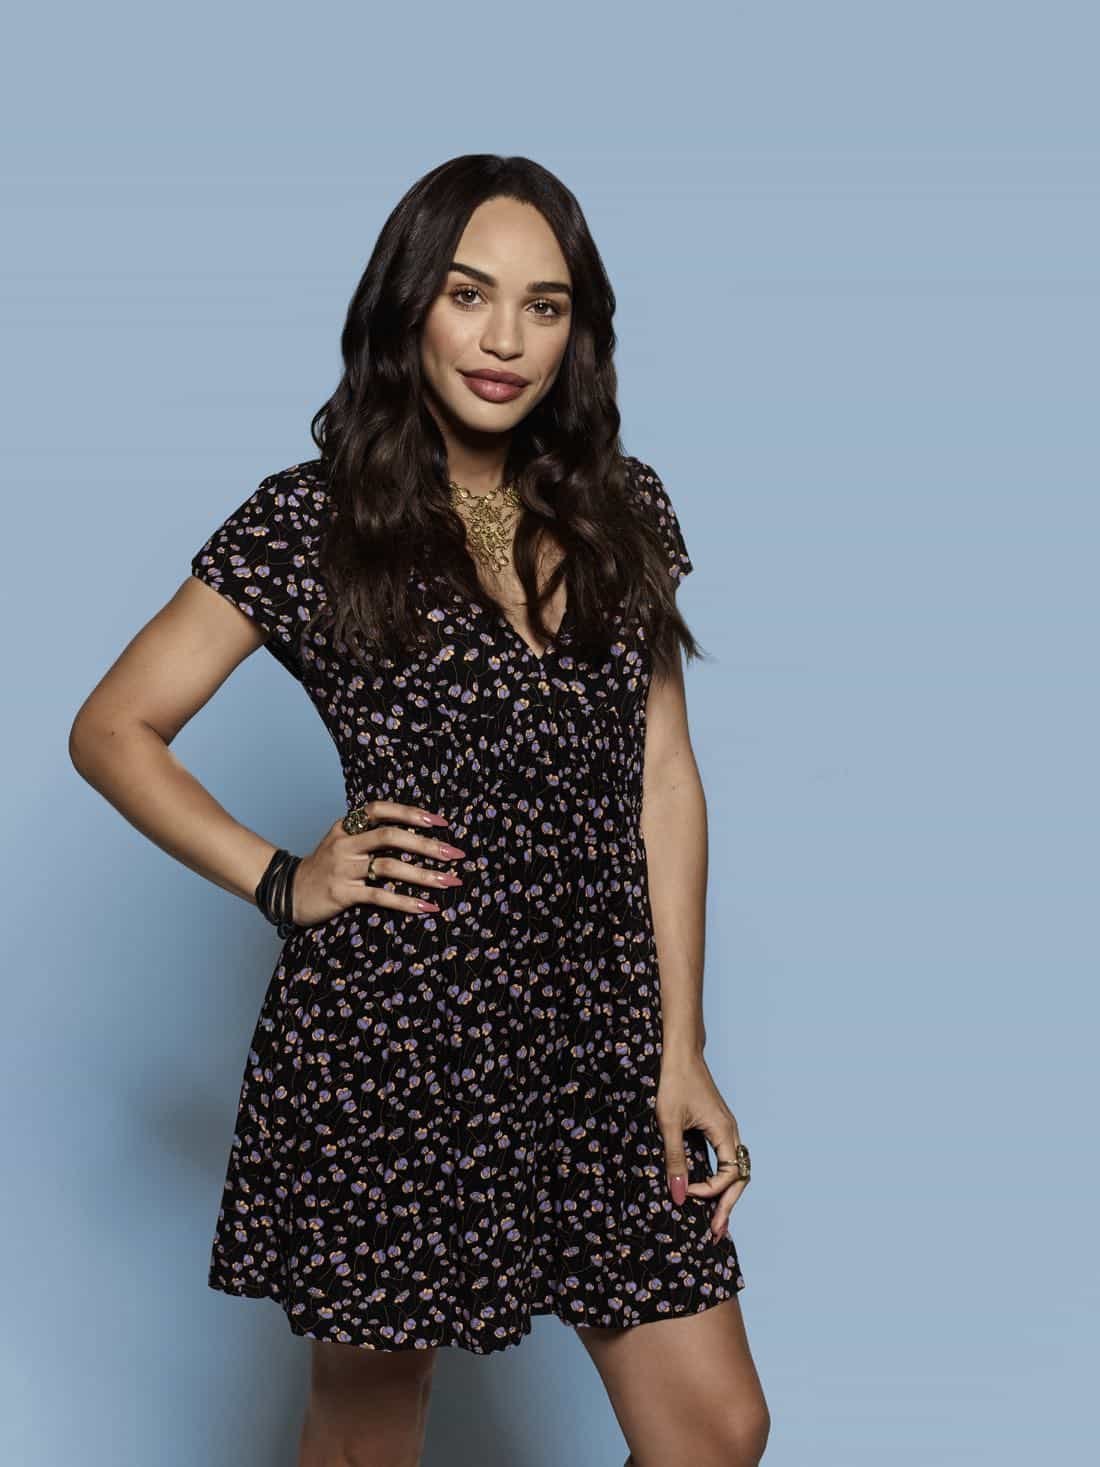 THE LAST MAN ON EARTH: Cleopatra Coleman as Erica in the LAST MAN ON EARTH season four premiere Sunday, Oct. 1 (9:30-10:00 PM ET/PT) on FOX. ©2017 Fox Broadcasting Company. Cr: Pamela Littky/FOX